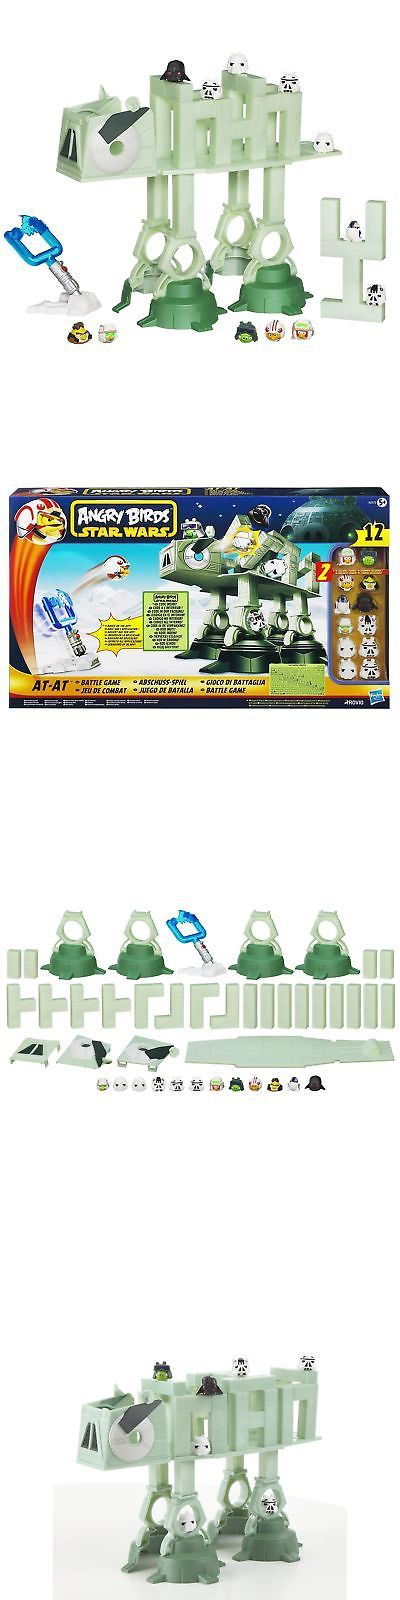 Plastic Action Games 165969: Angry Birds Star Wars At-At Attack Battle Game -> BUY IT NOW ONLY: $34.77 on eBay!